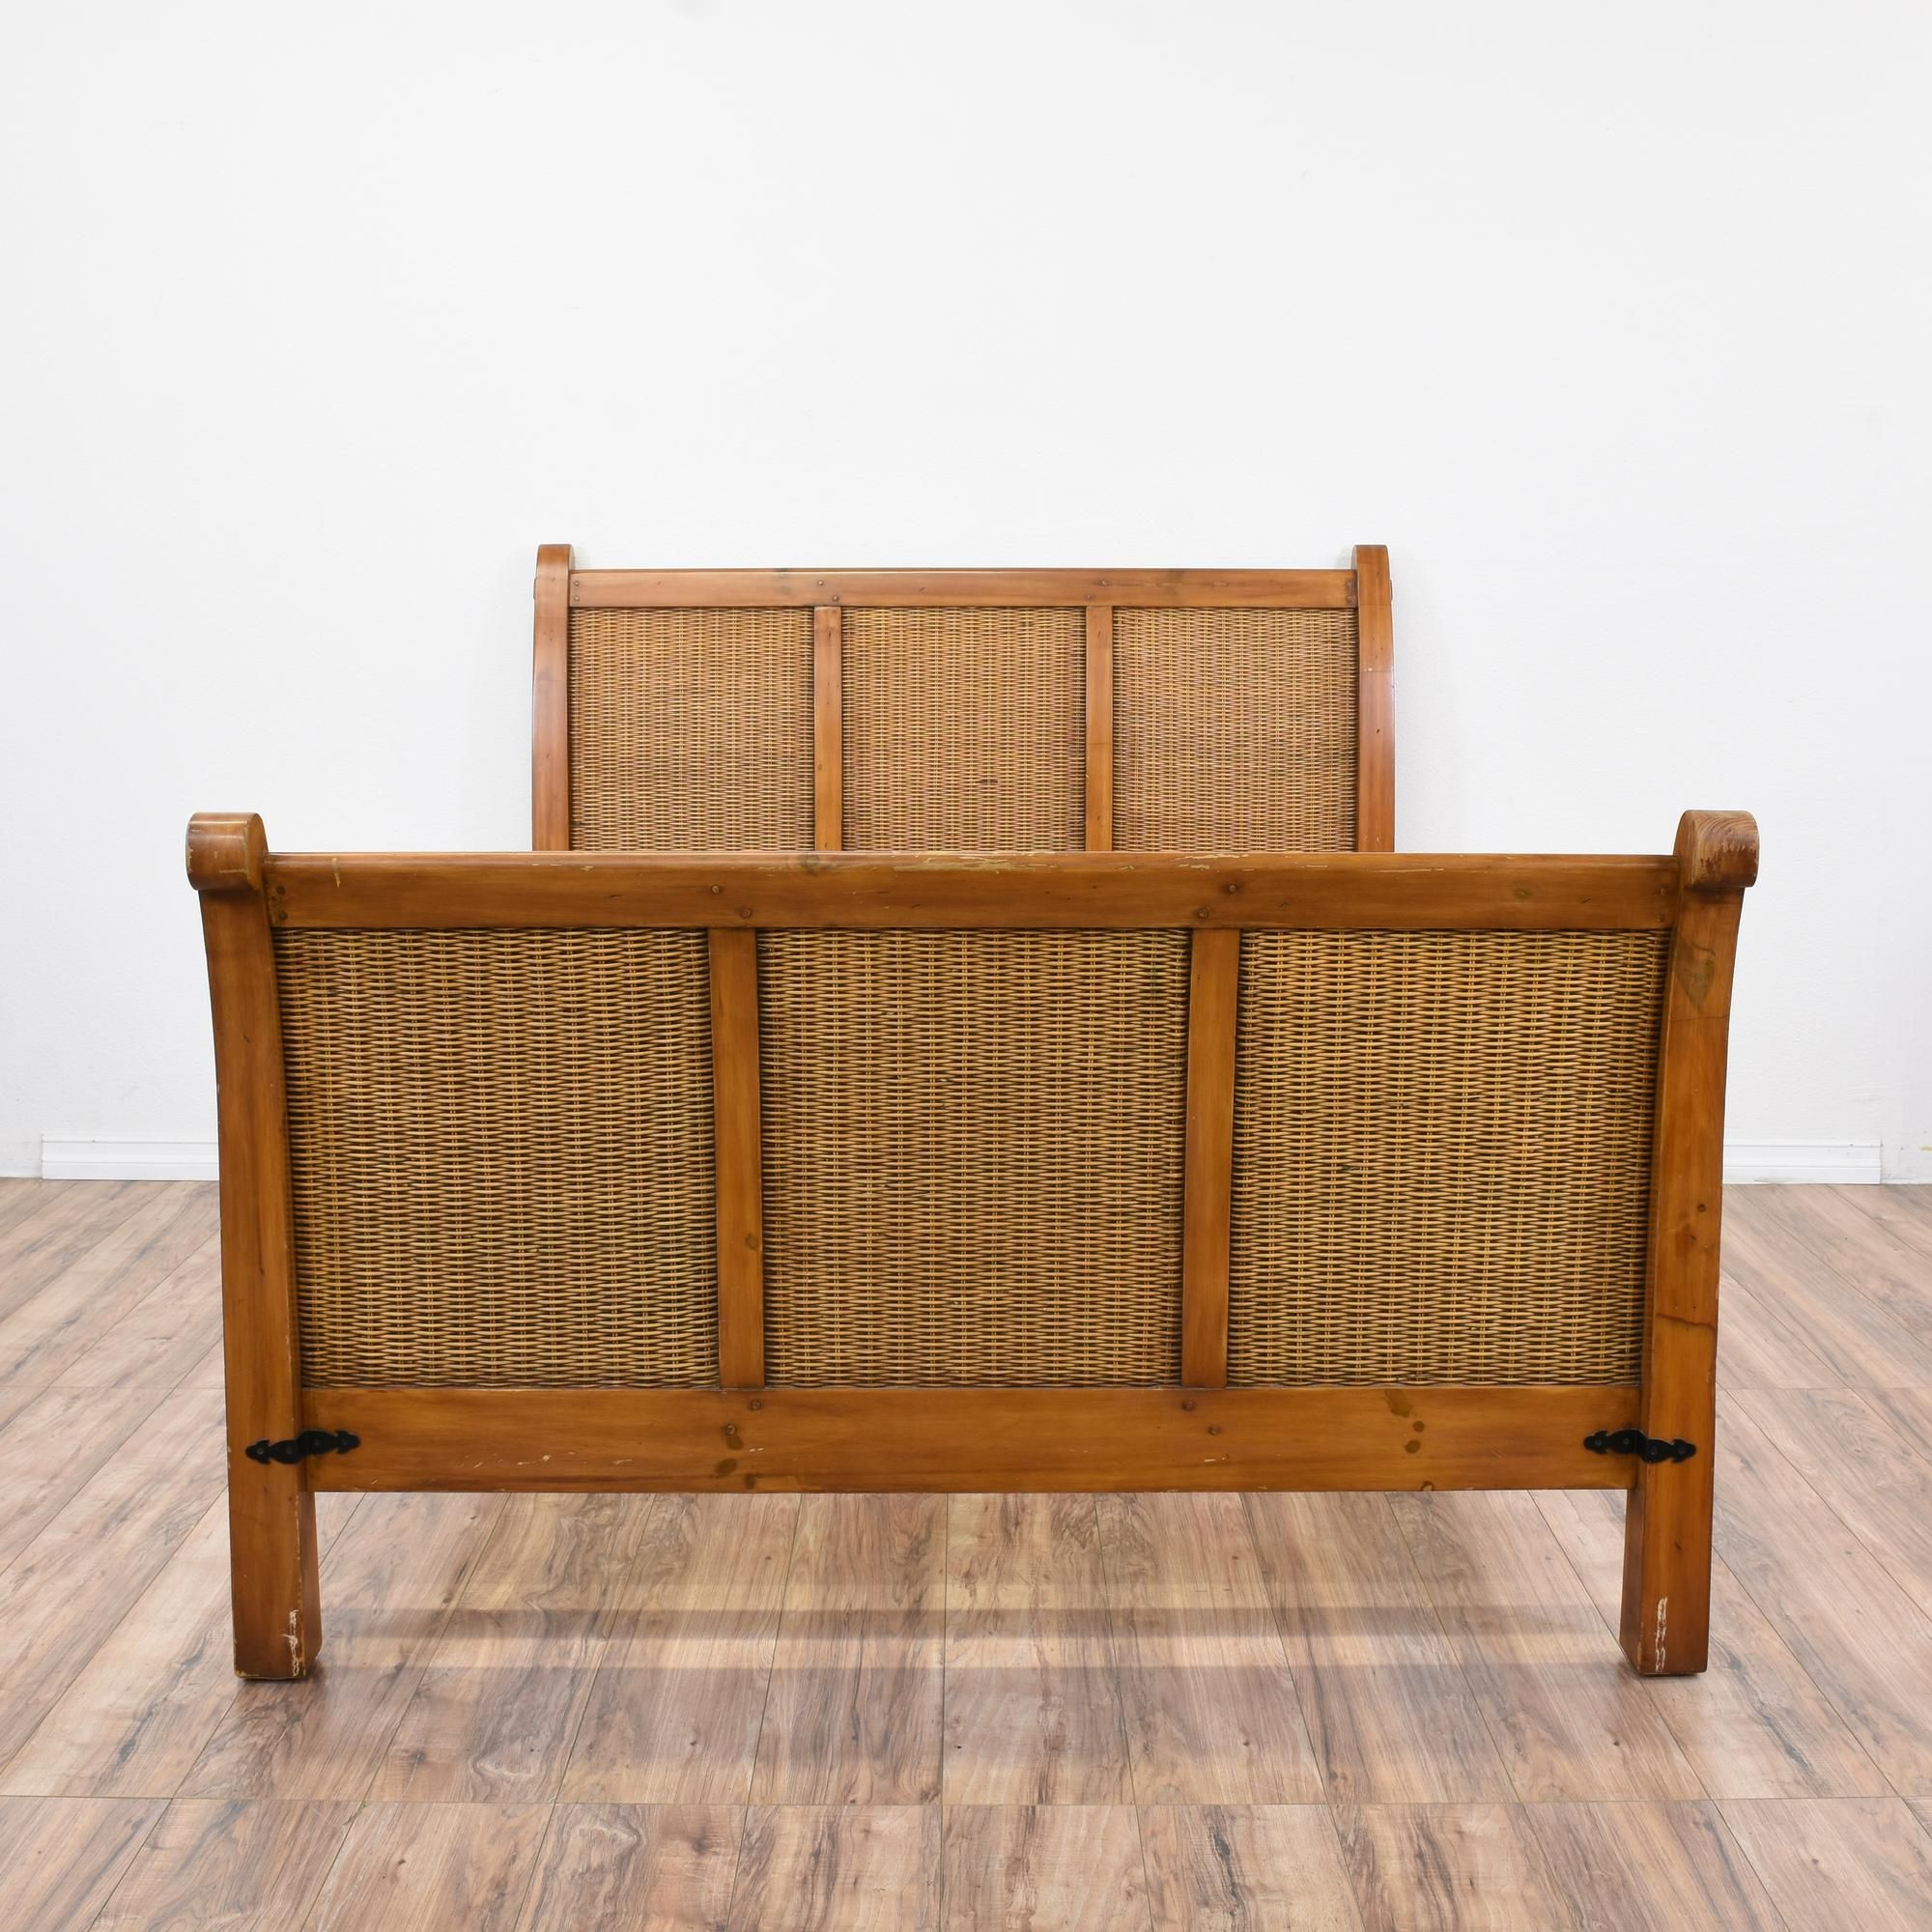 tropical woven wicker queen sized bed frame - Wicker Bed Frame